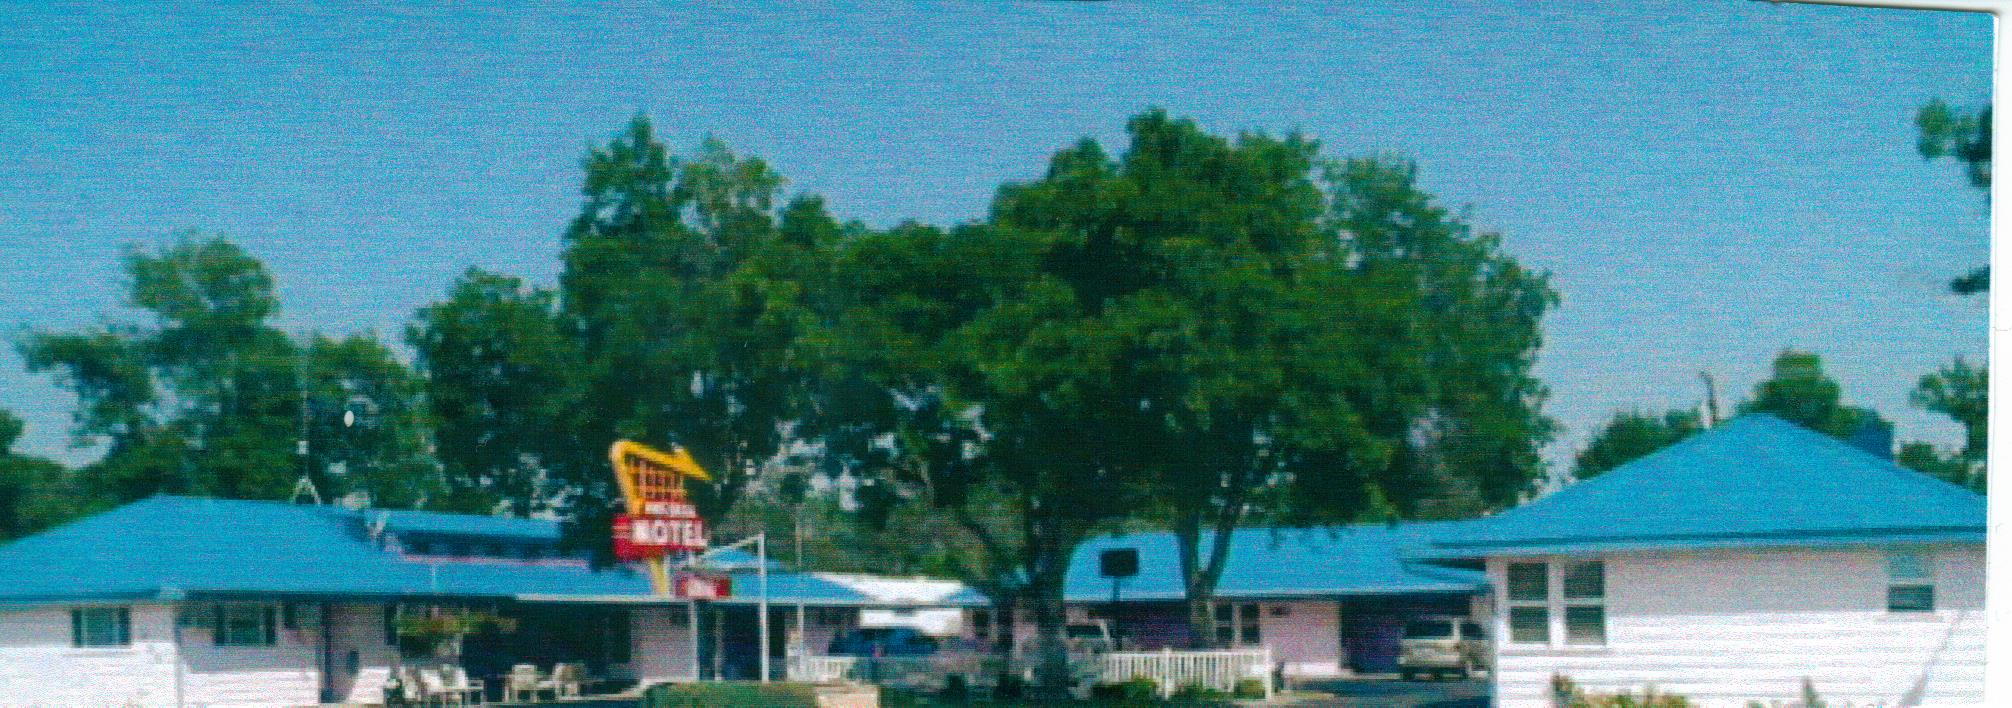 Russell Motel